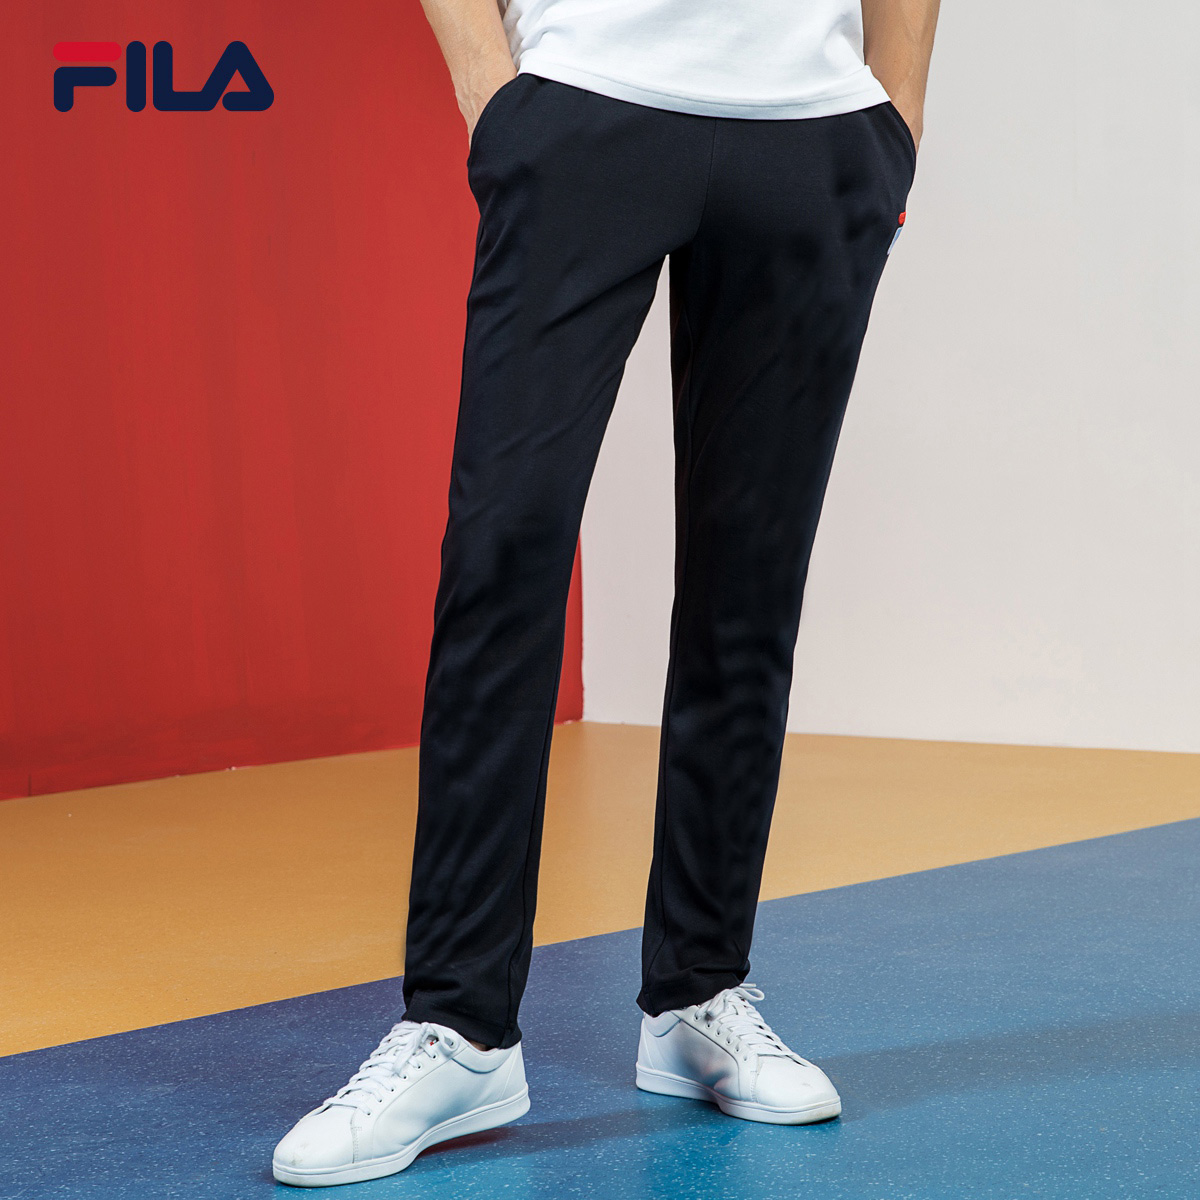 34733be1c668 FILA Fila men's trousers 2018 spring new trousers trend fashion running  pants men · Zoom · lightbox moreview · lightbox moreview ...